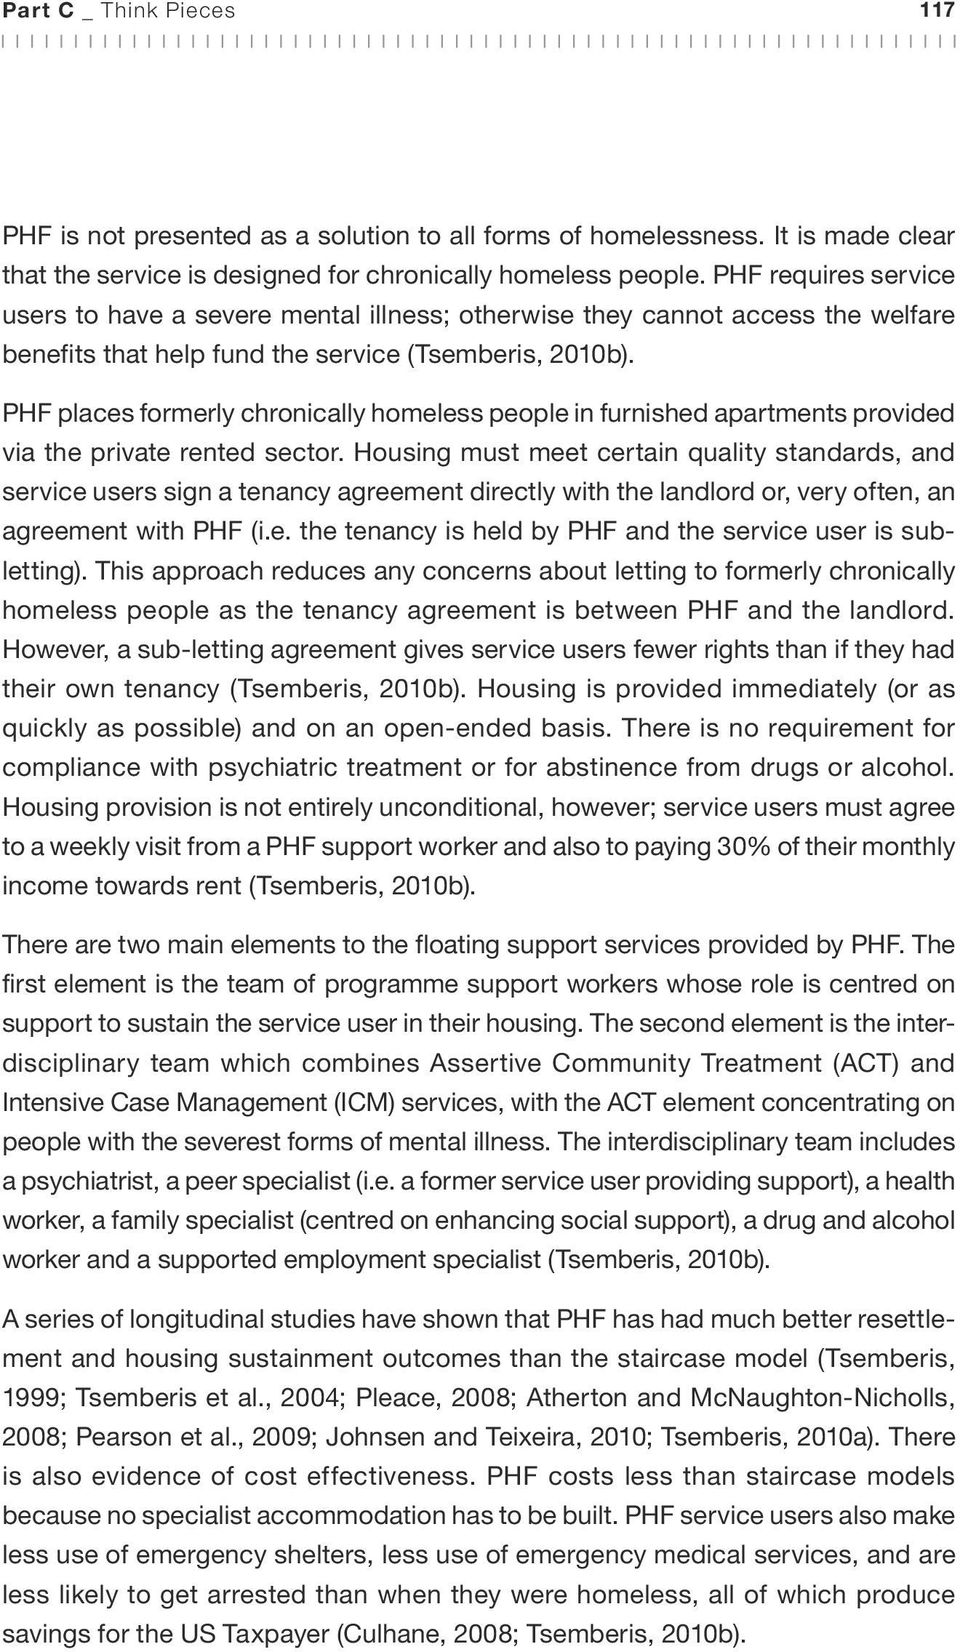 PHF places formerly chronically homeless people in furnished apartments provided via the private rented sector.